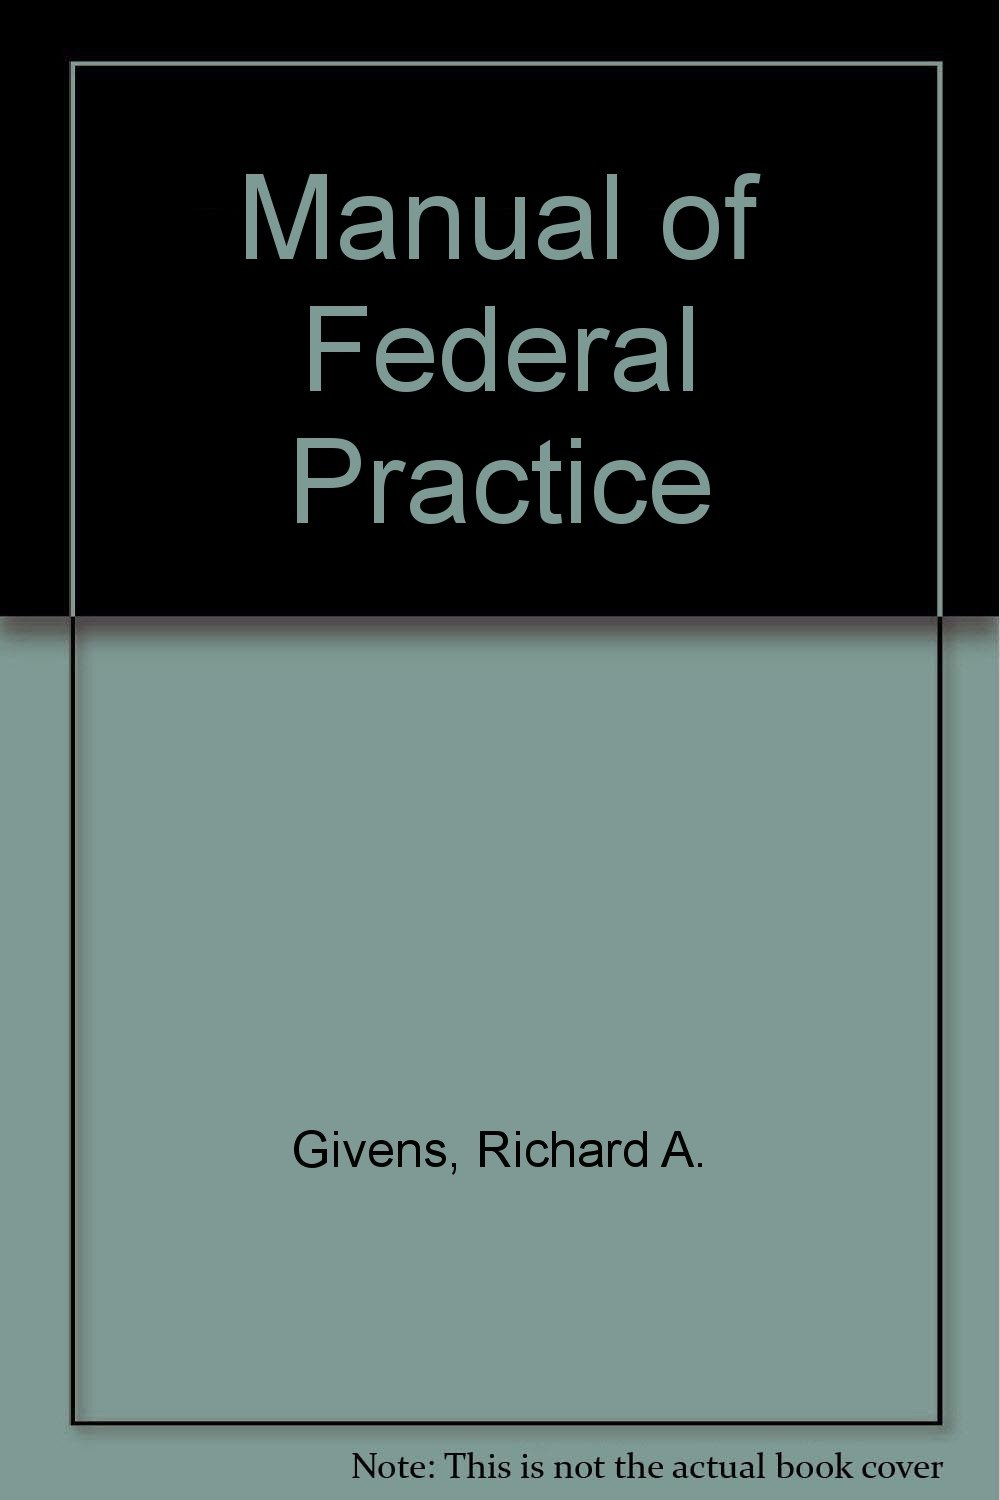 Manual of Federal Practice: Richard A. Givens: 9780327001393: Amazon.com:  Books